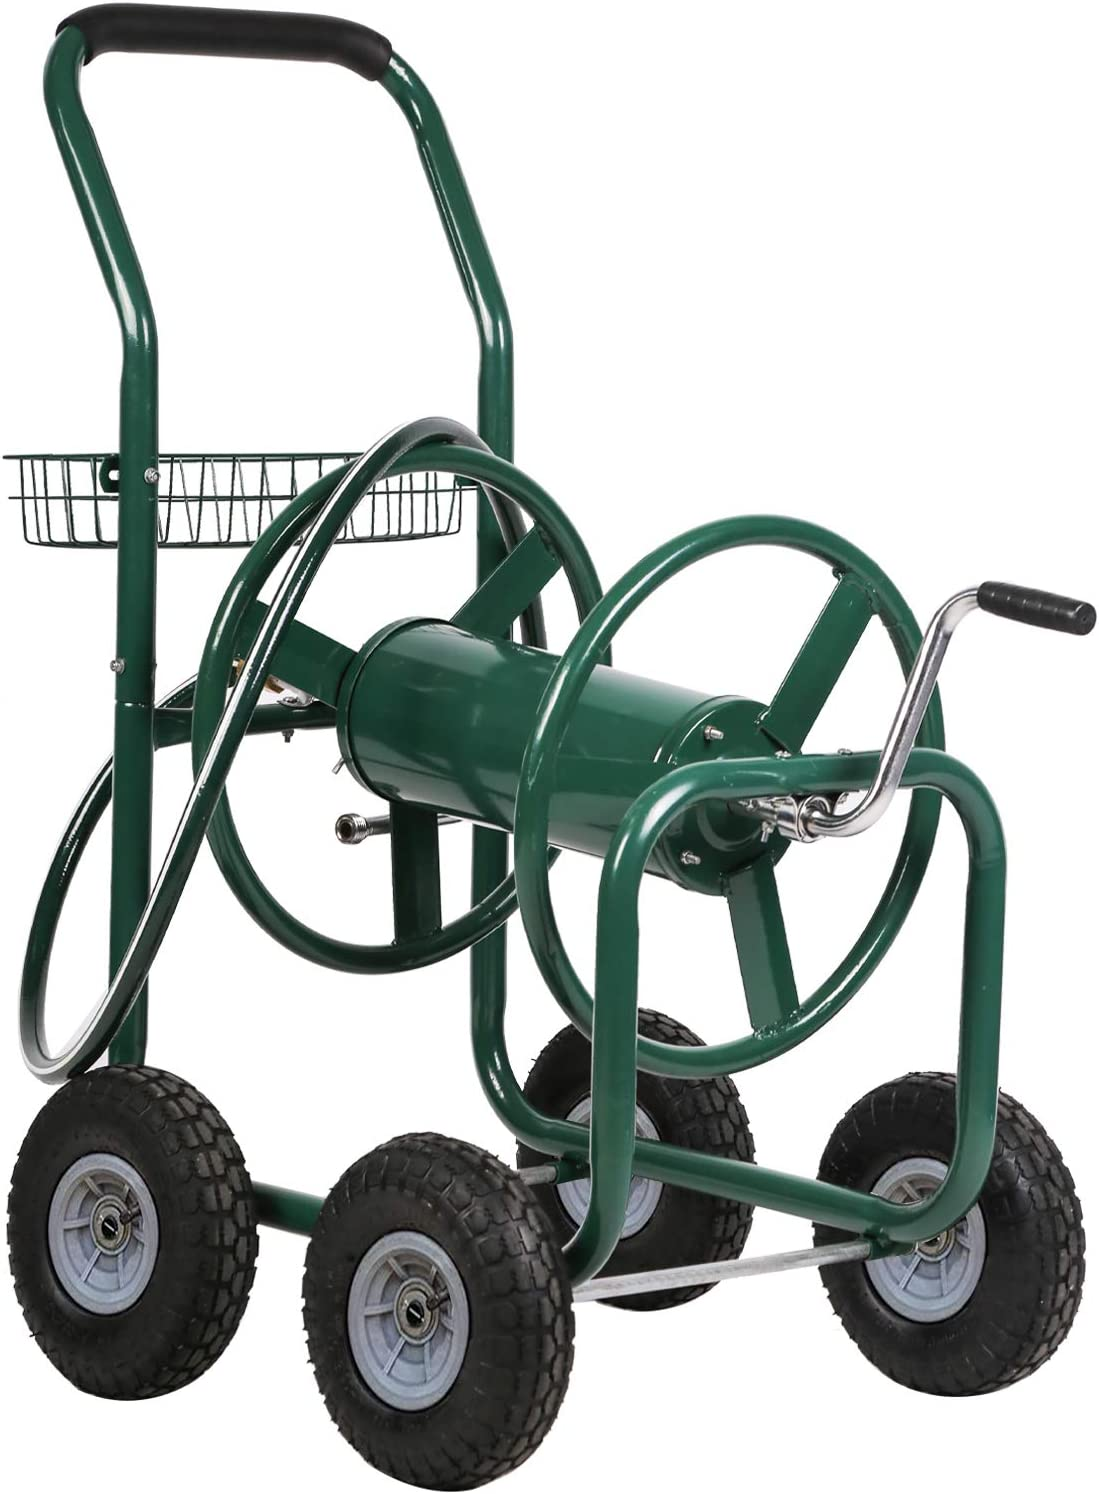 FDW Garden Hose Reel Cart with Wheels Reel Cart Tools Outdoor Yard Water Planting Truck Heavy Duty Water Planting (Green)